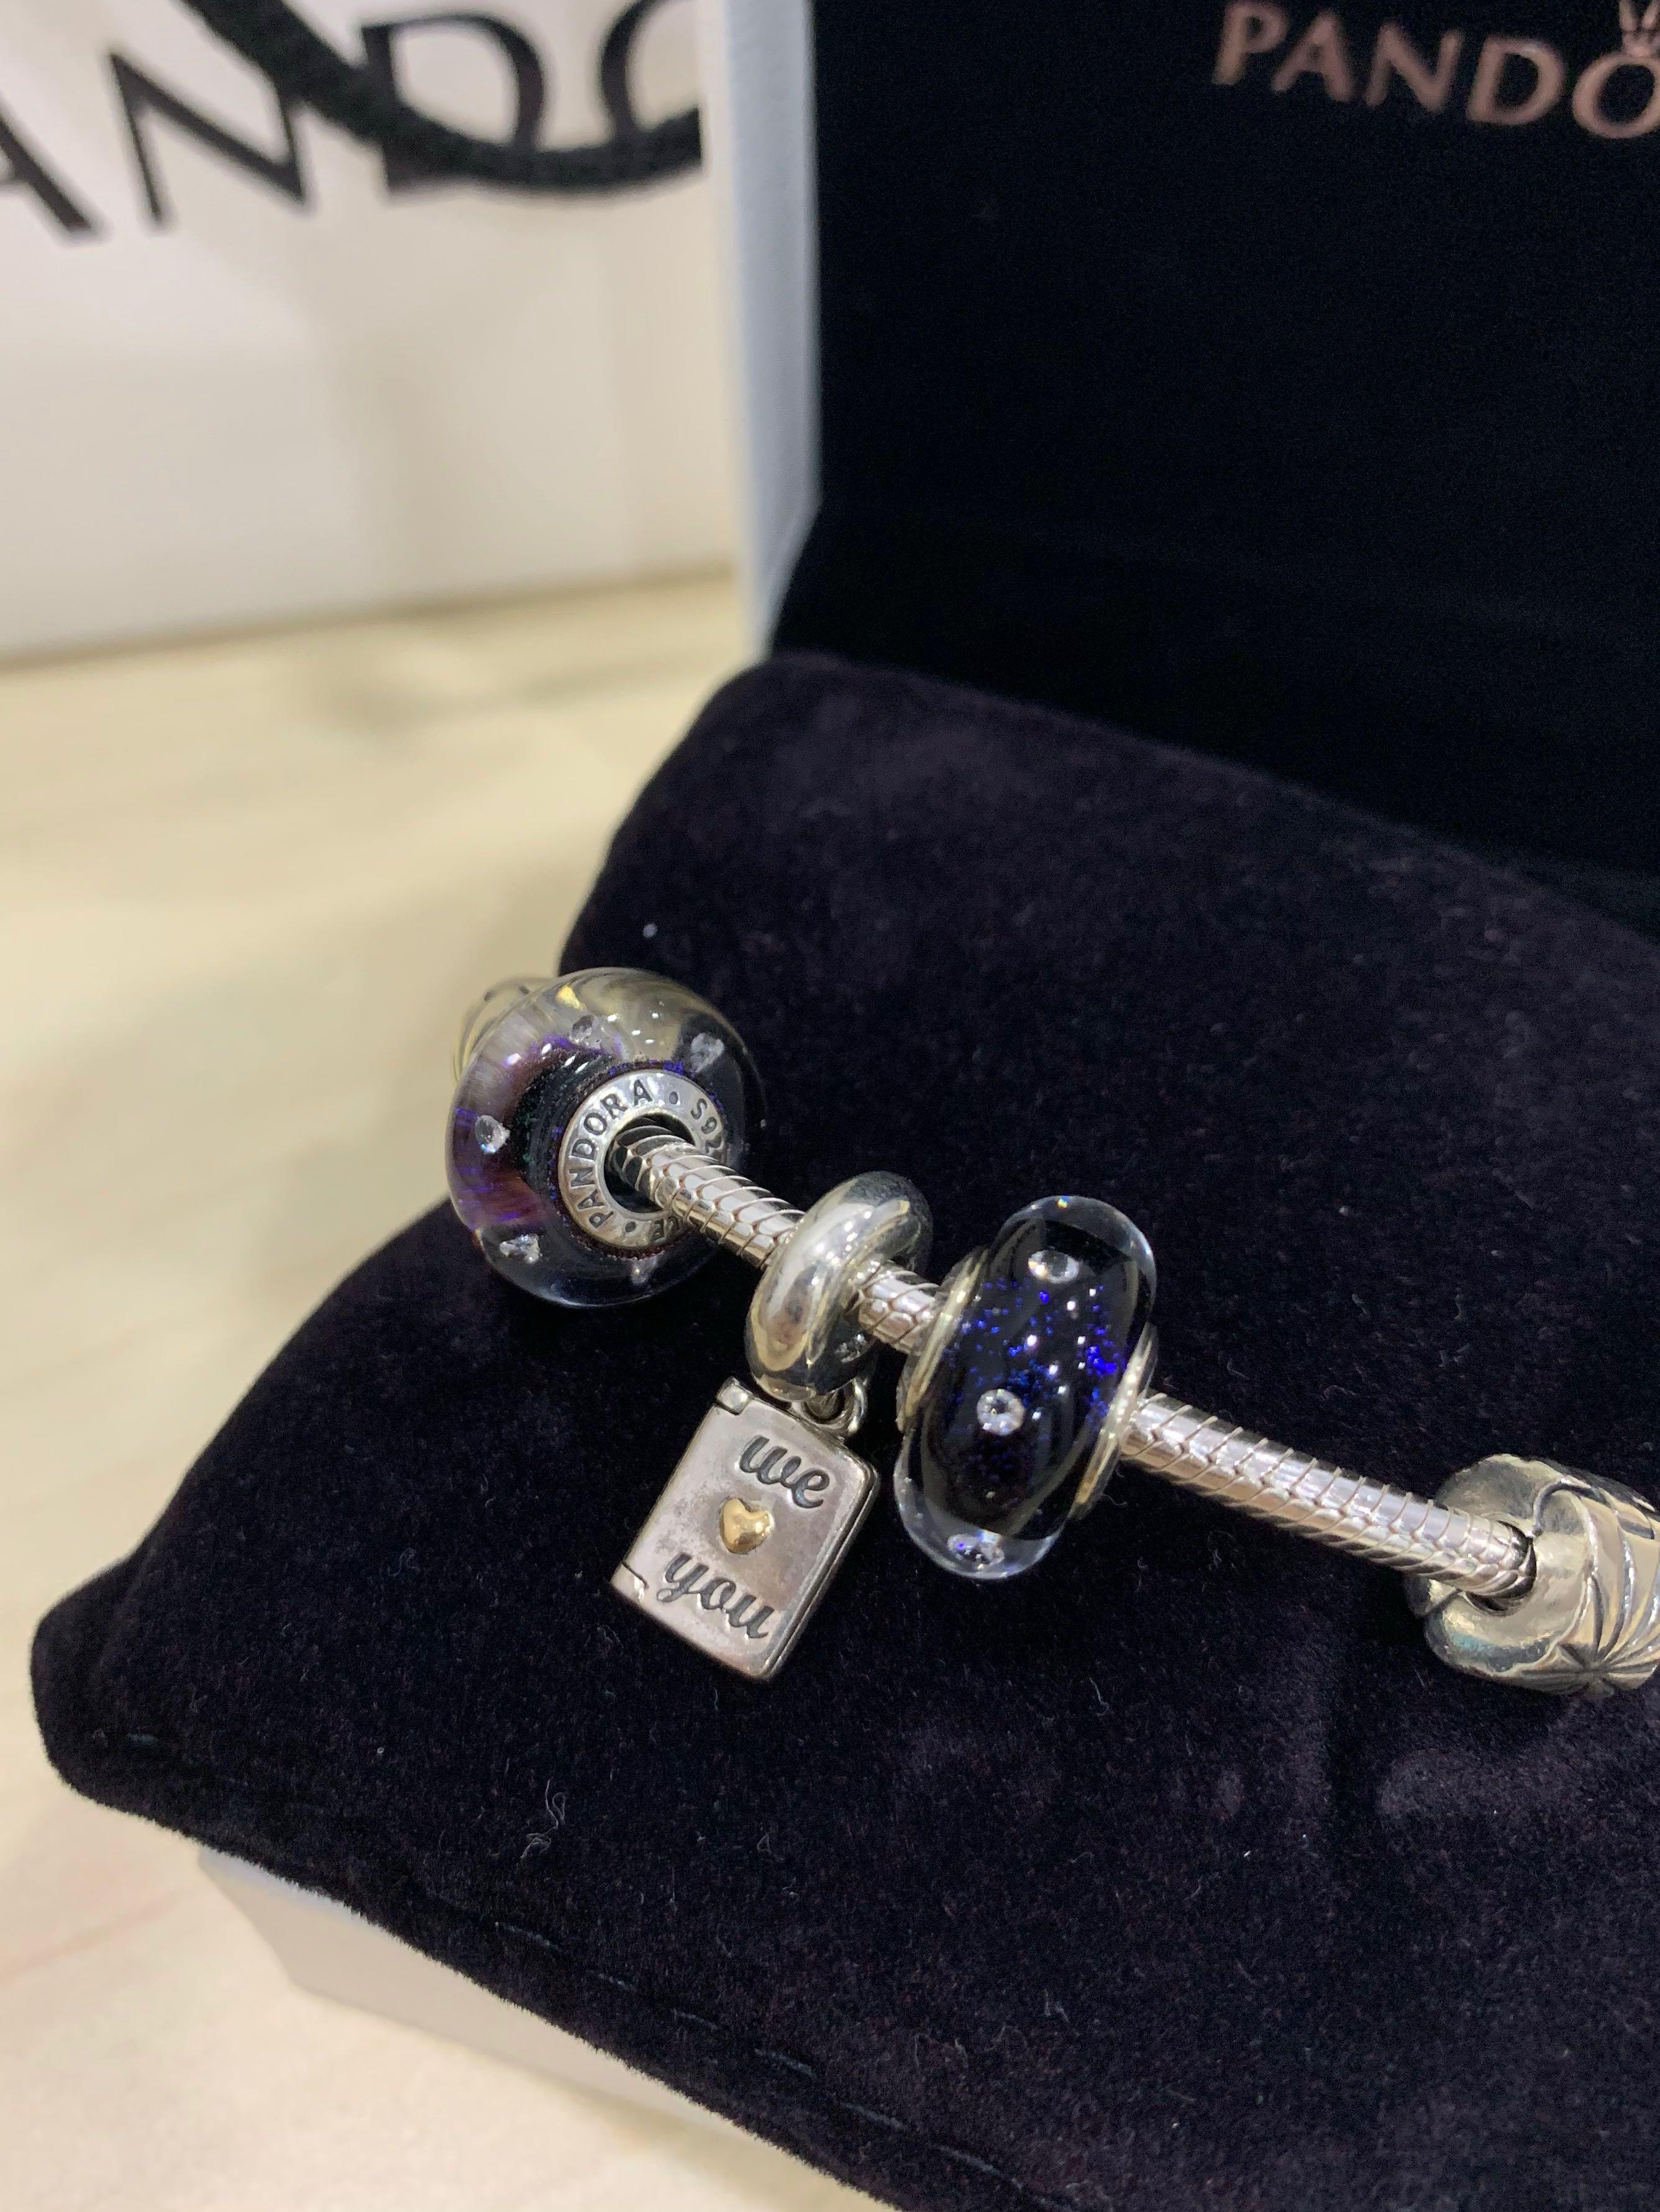 AUTHENTIC Pandora Bracelet with Charms (We Love You)